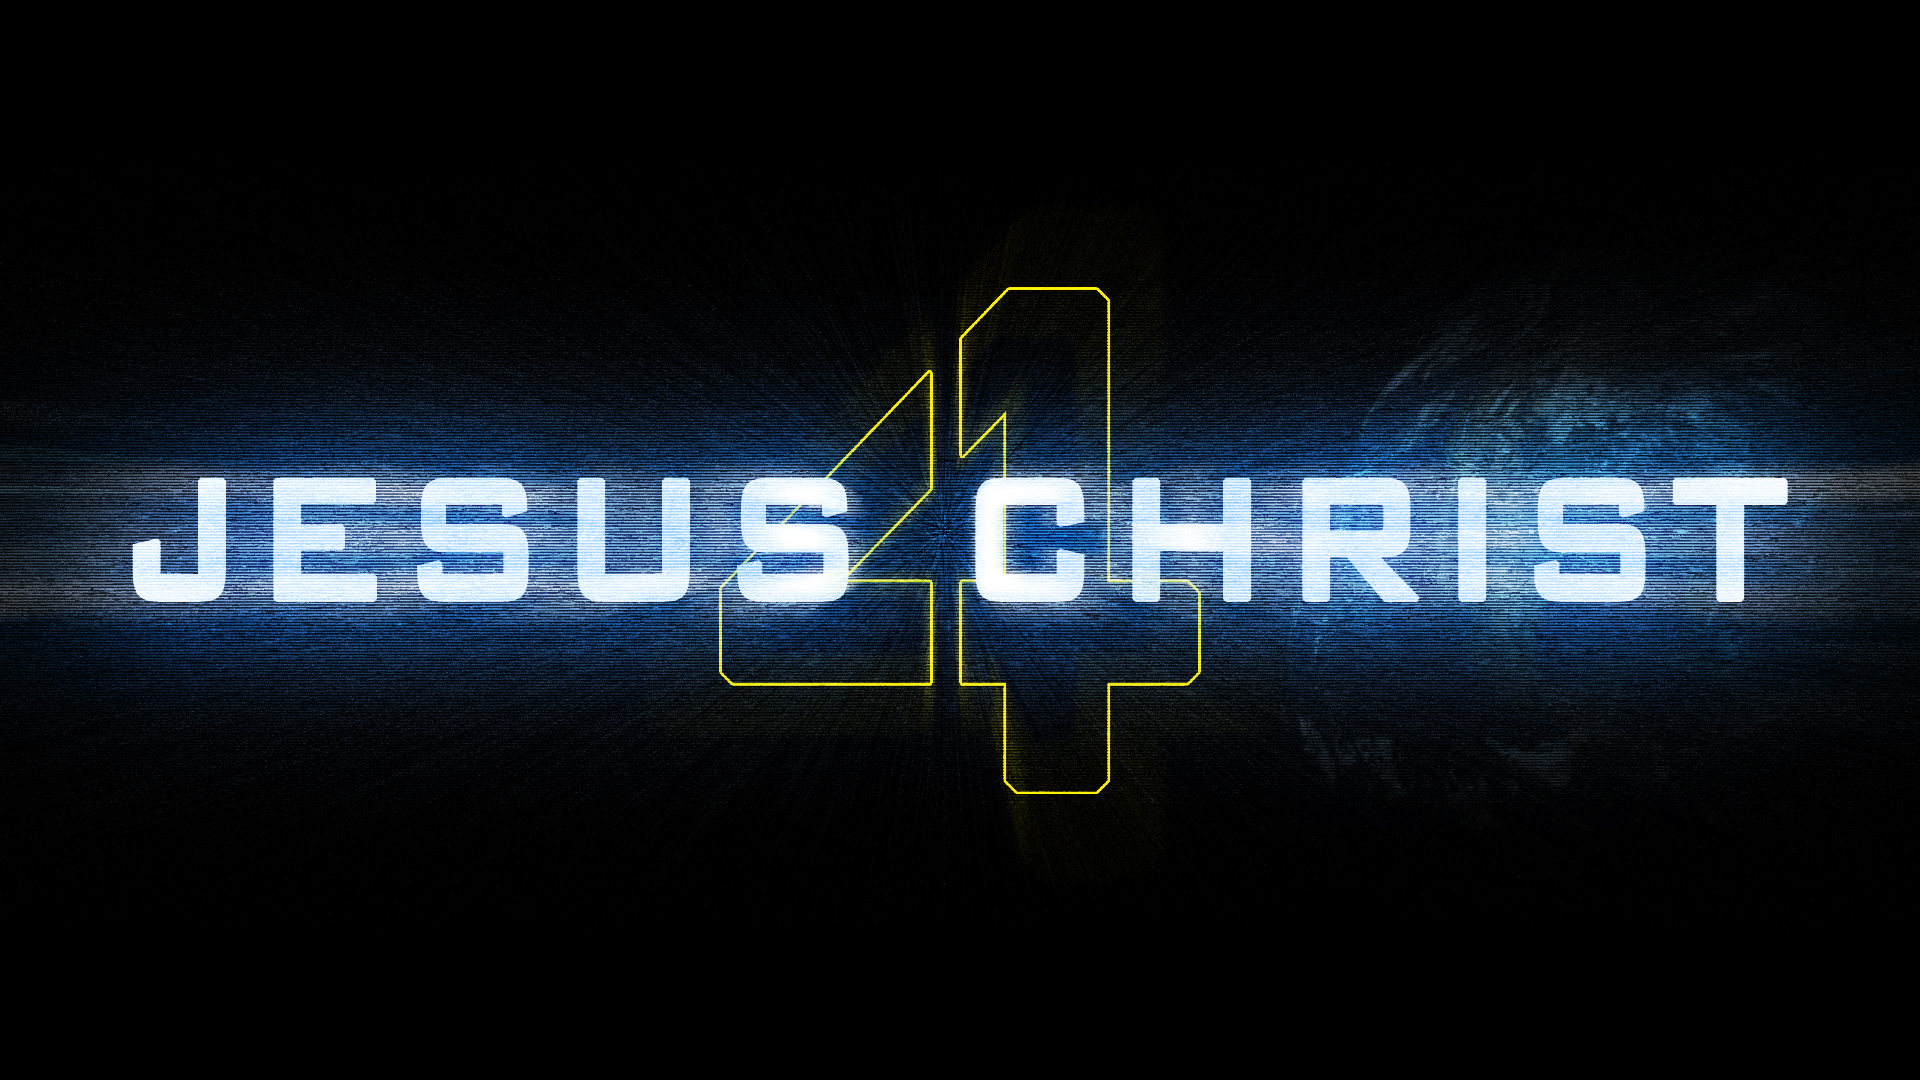 1920x1080 Hd Wallpaper Background Image: HD Jesus Wallpapers 1920x1080